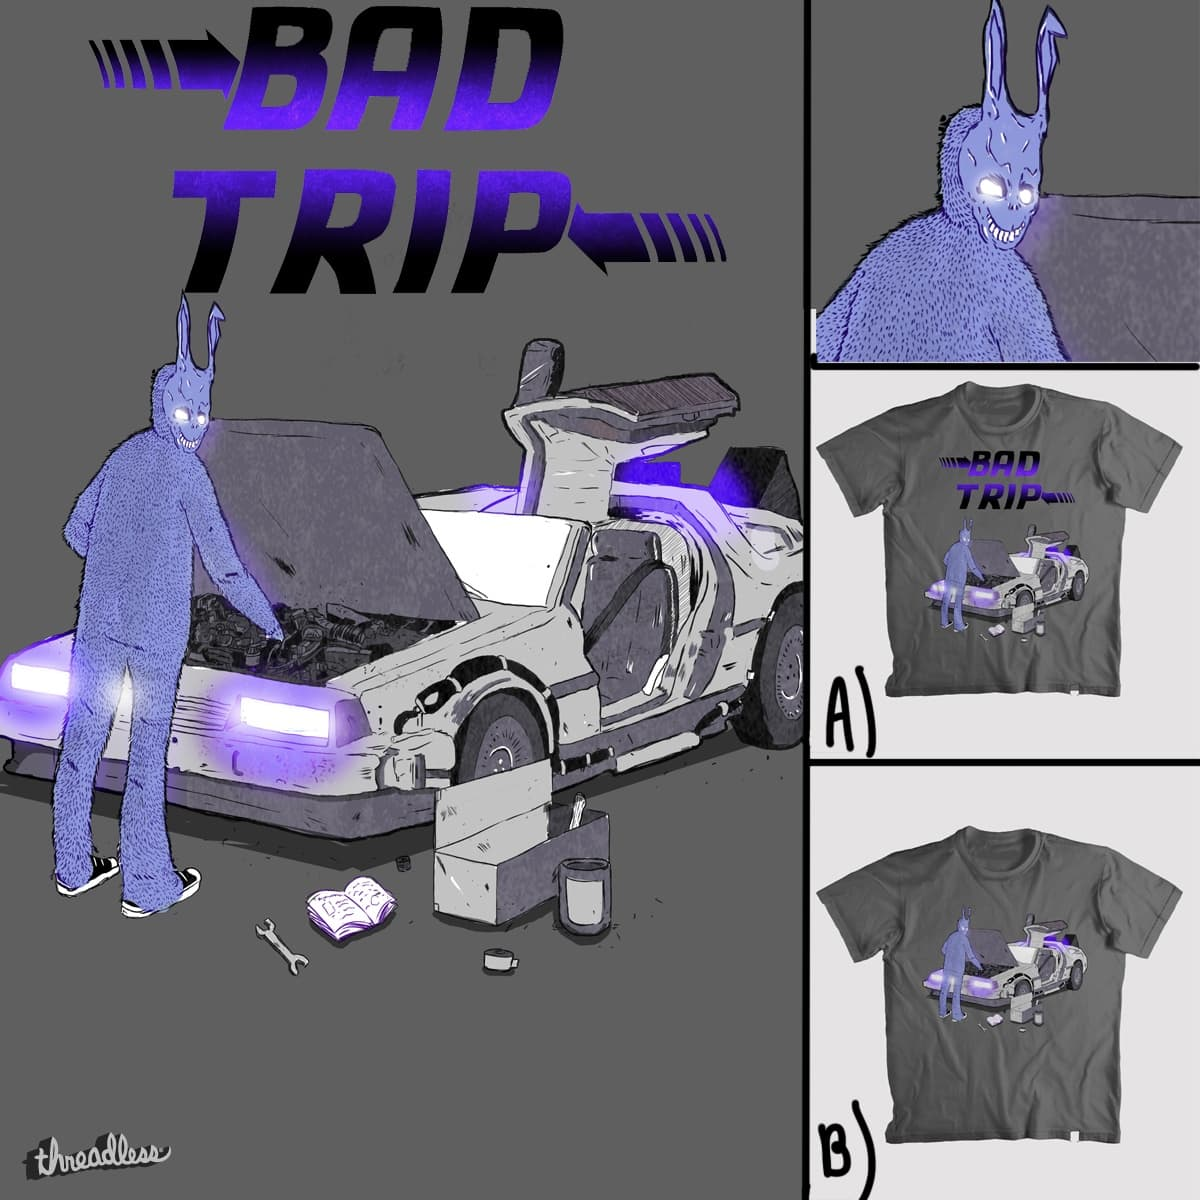 Bad trip by diegorgurgel on Threadless